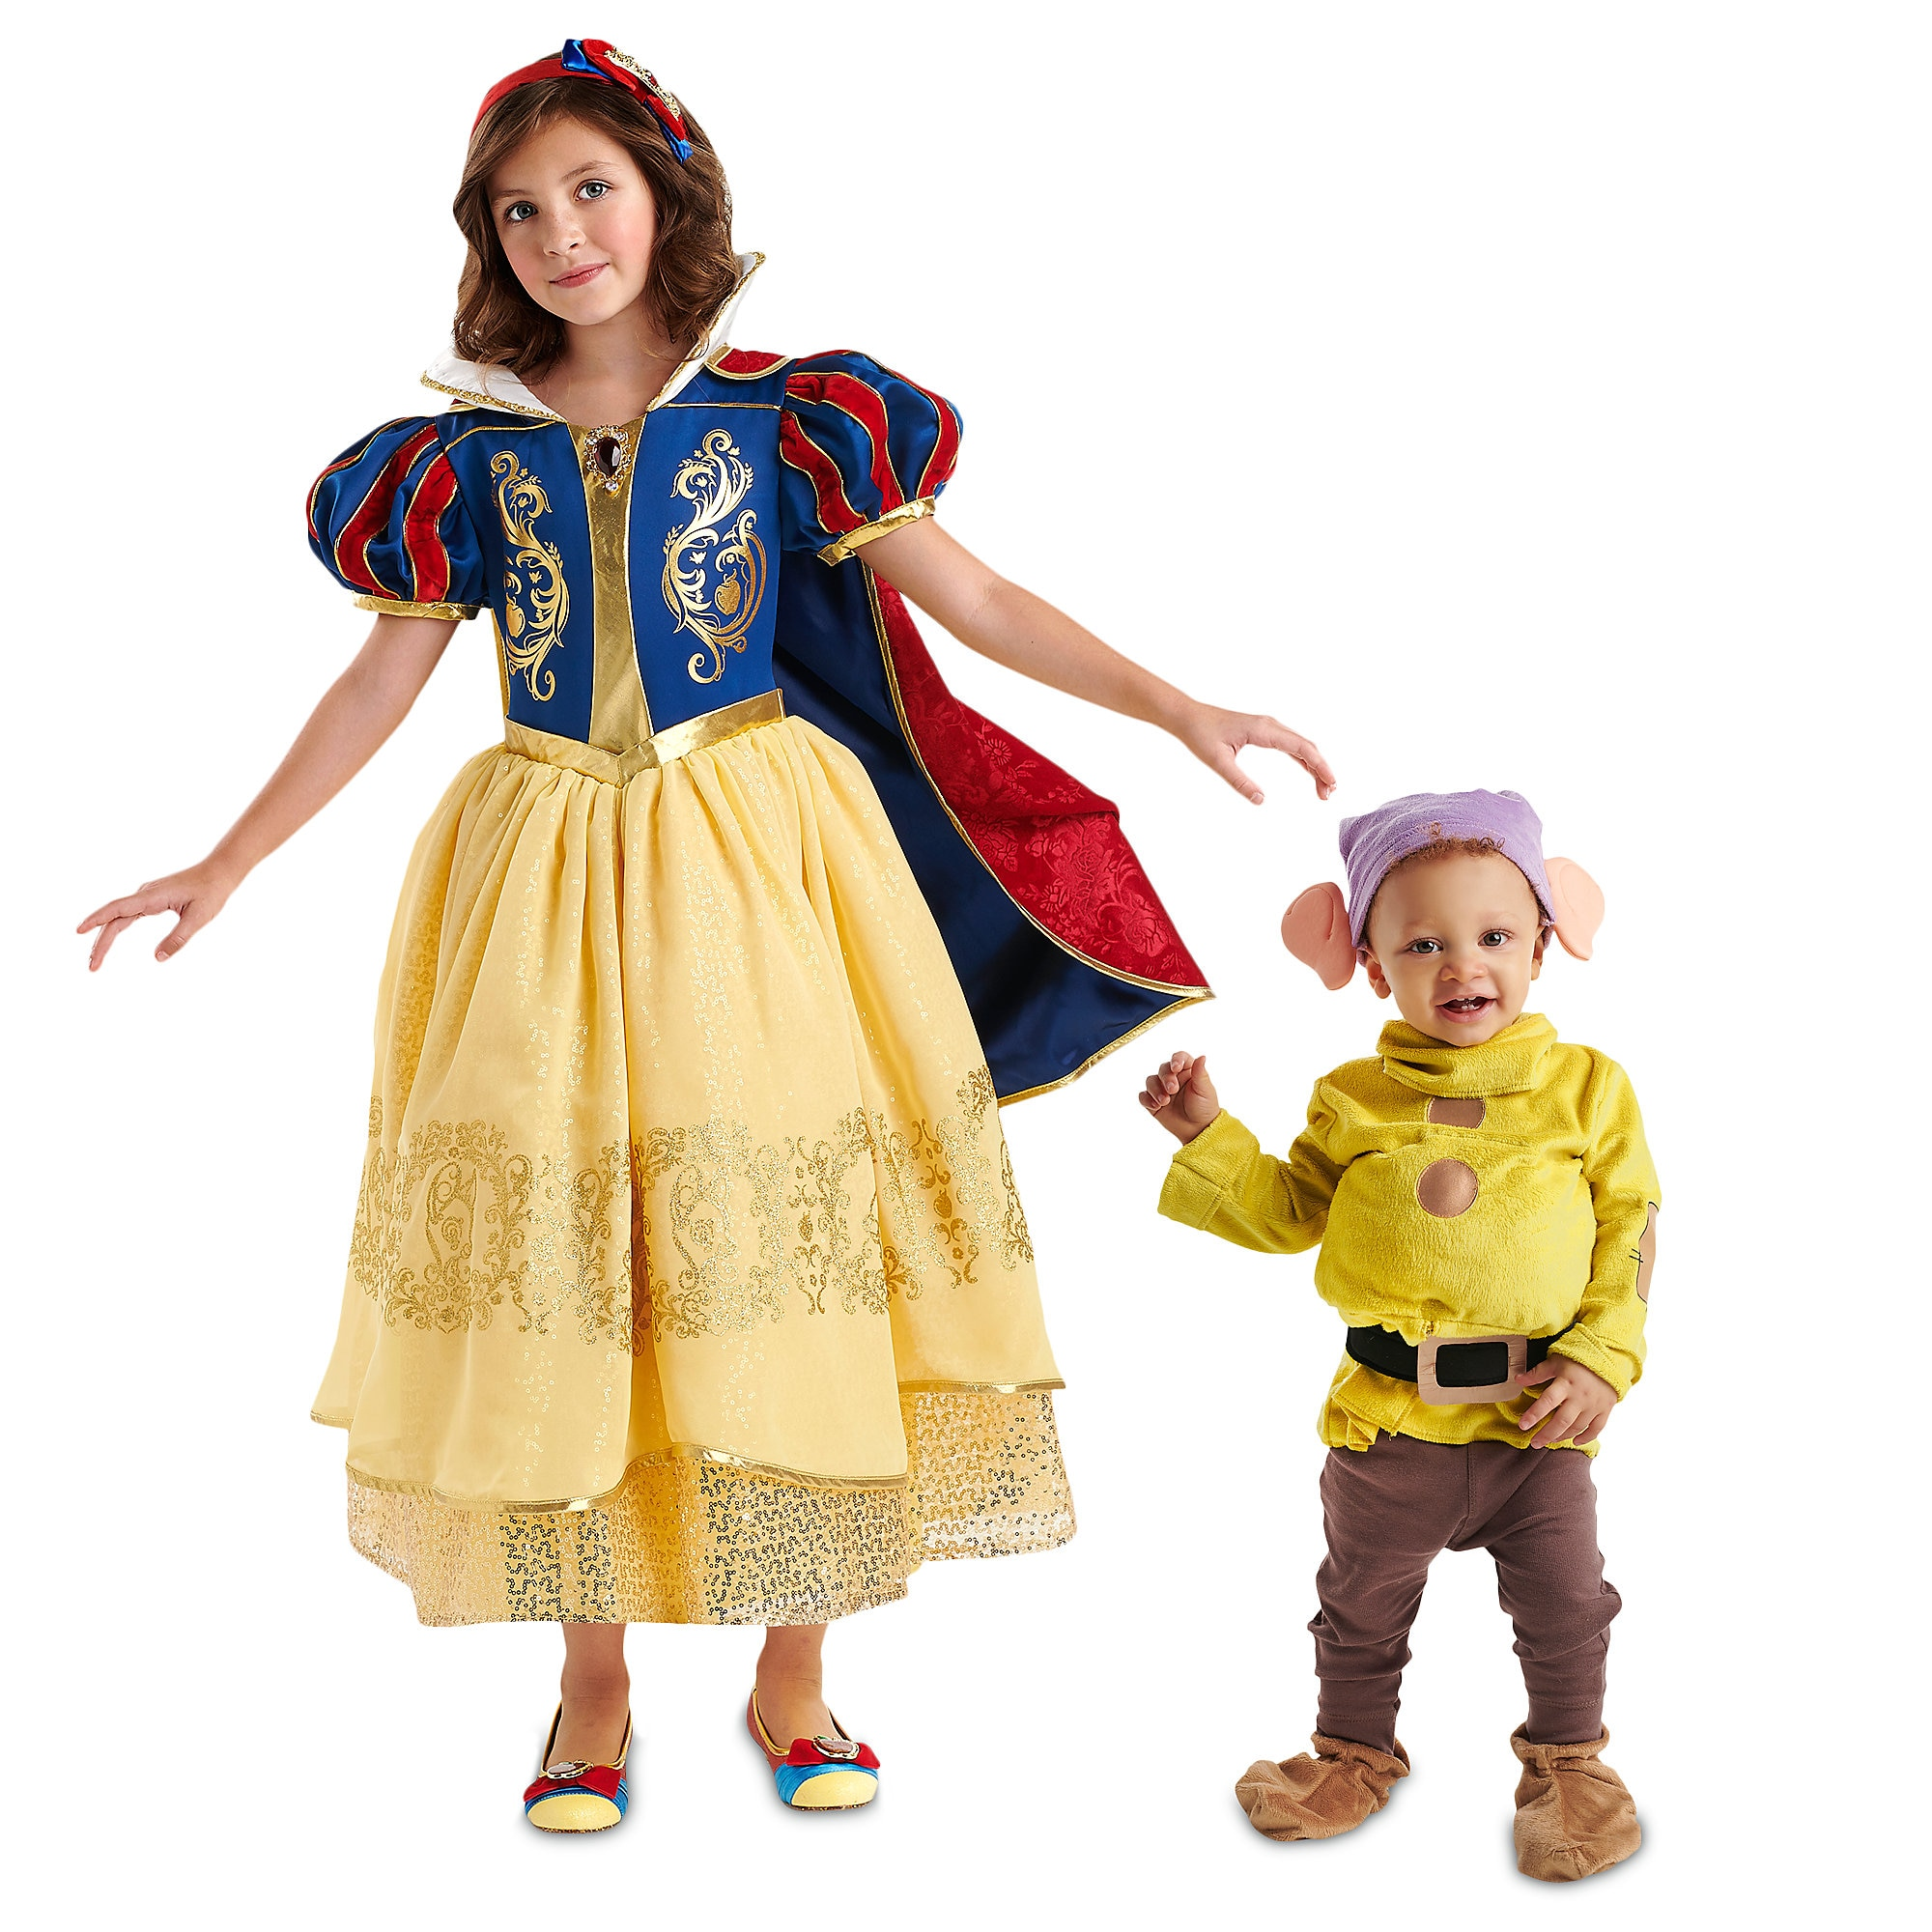 Snow White Costume Collection for Family